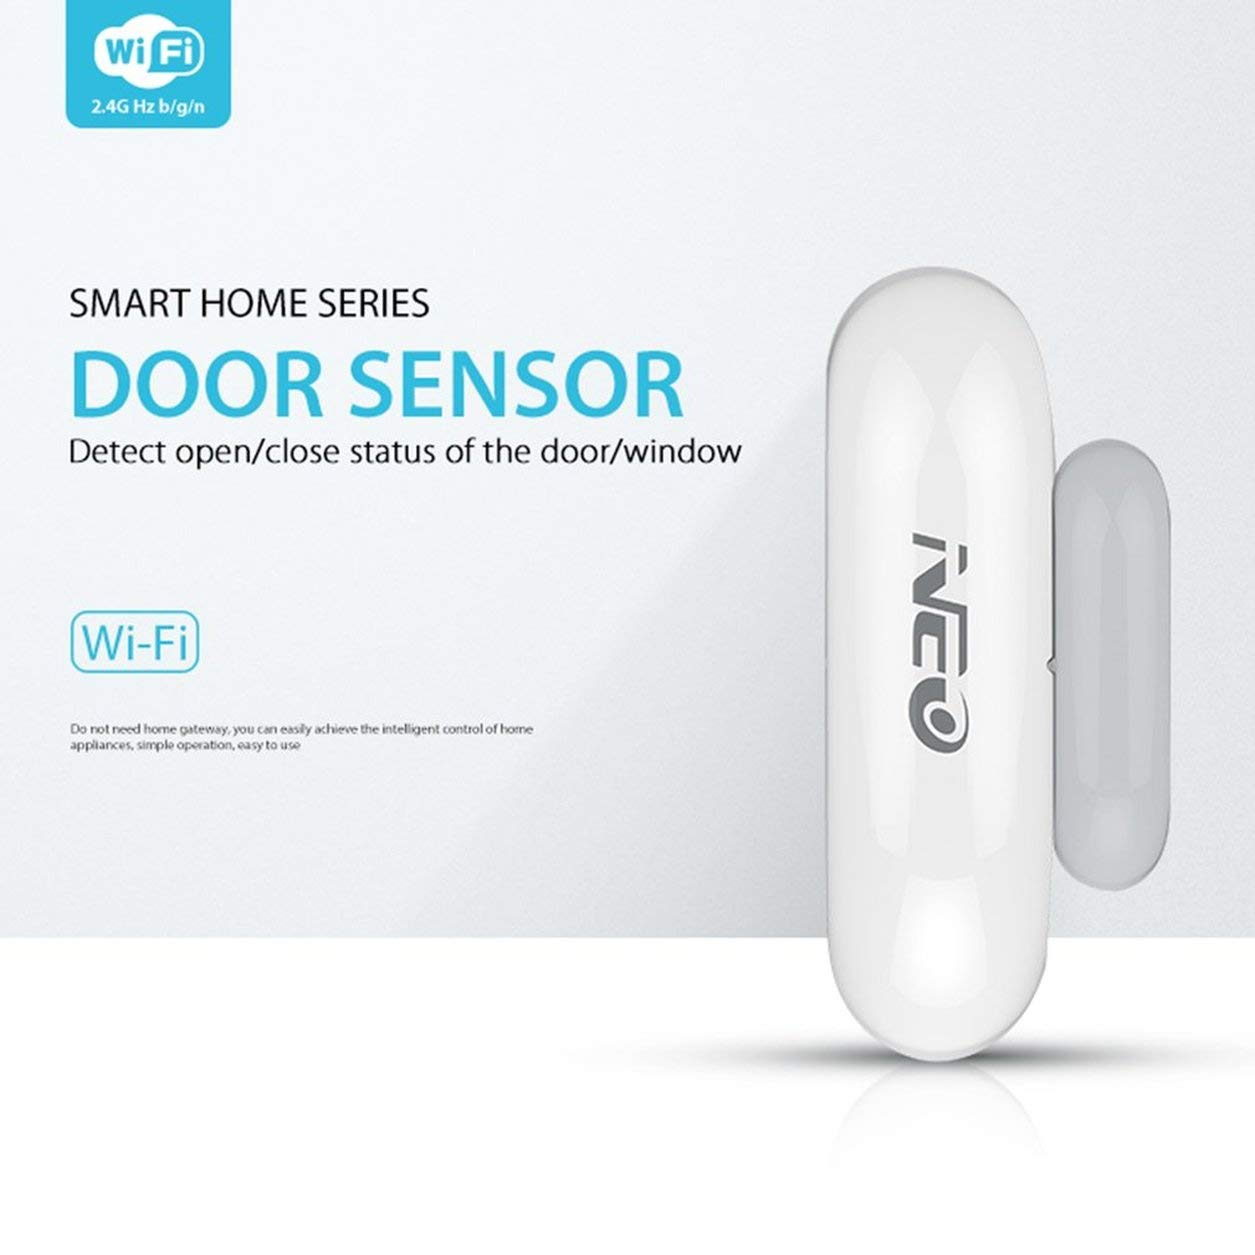 Dailyinshop NAS-DS01W WiFi Smart Door Window Sensor Plug & Play Monitoraggio remoto a casa